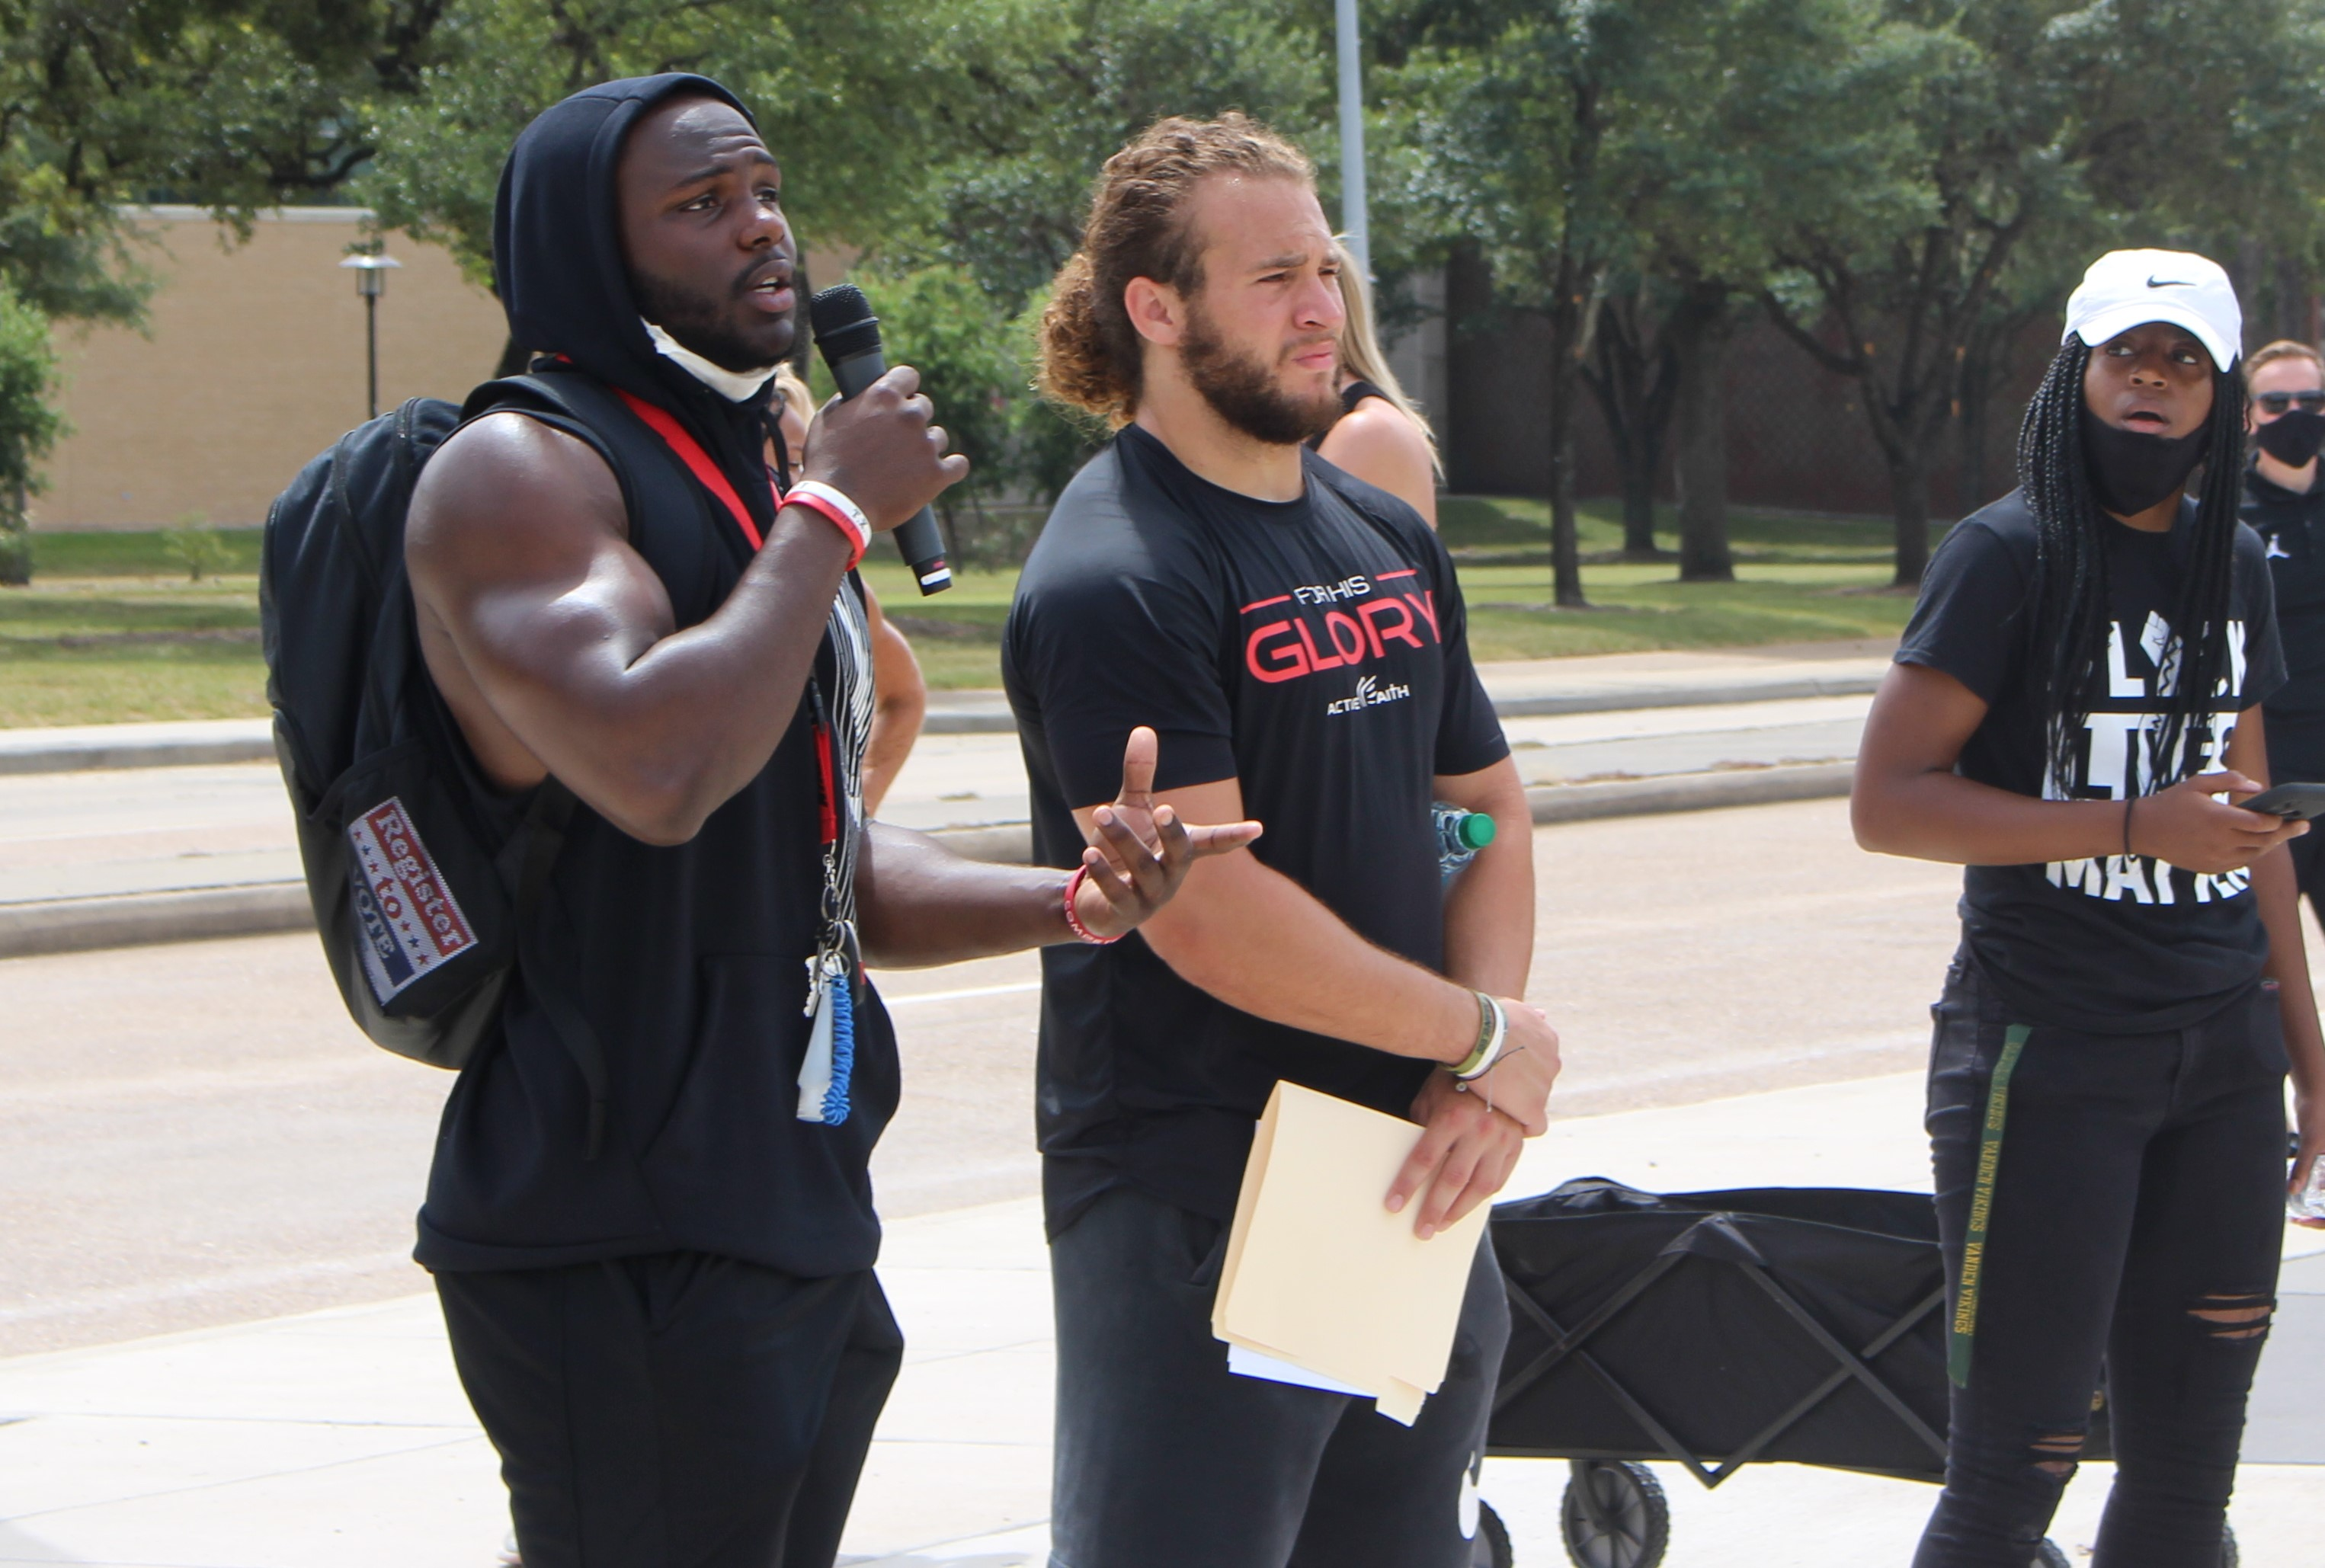 Senior linebacker Grant Stuard (right) is one of eight team captains for UH in 2020. | Donna Keeya/The Cougar